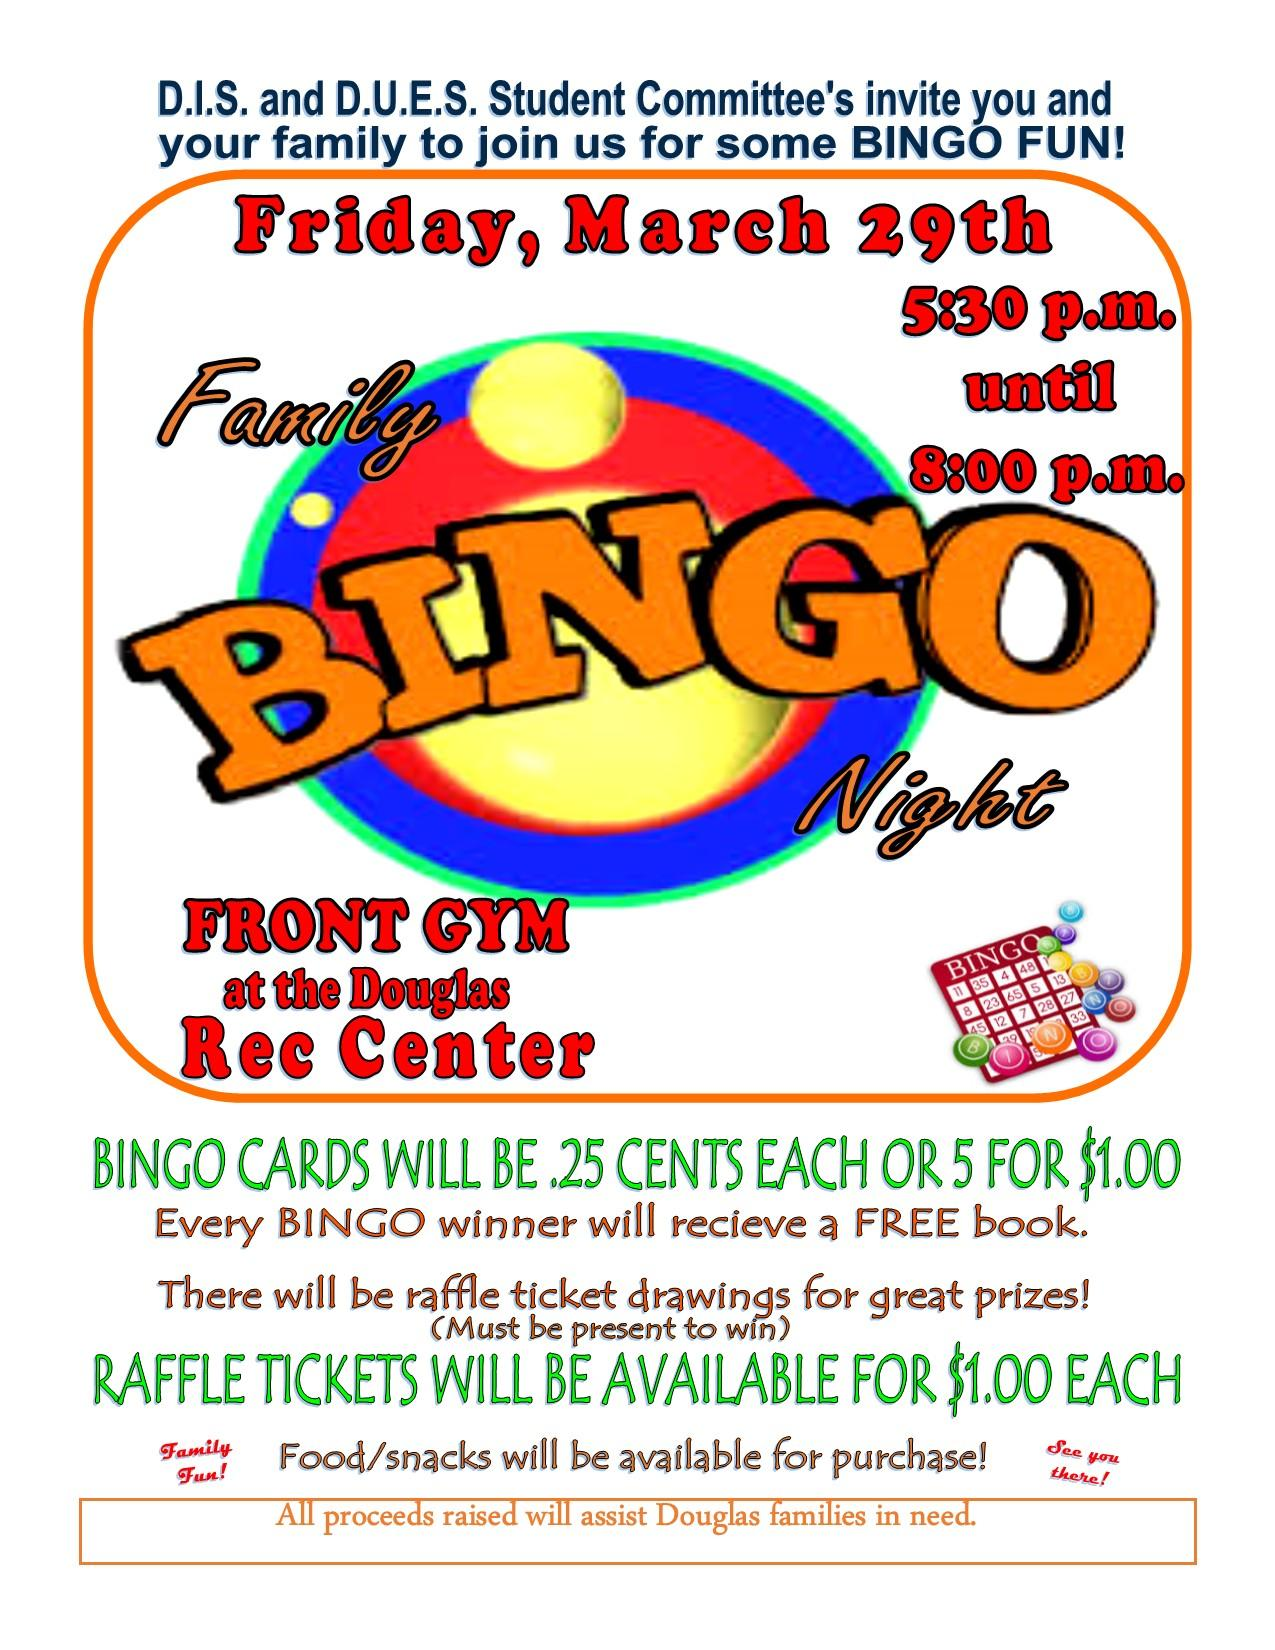 Image of flyer for Family Bingo night on Friday, March 29, 2019